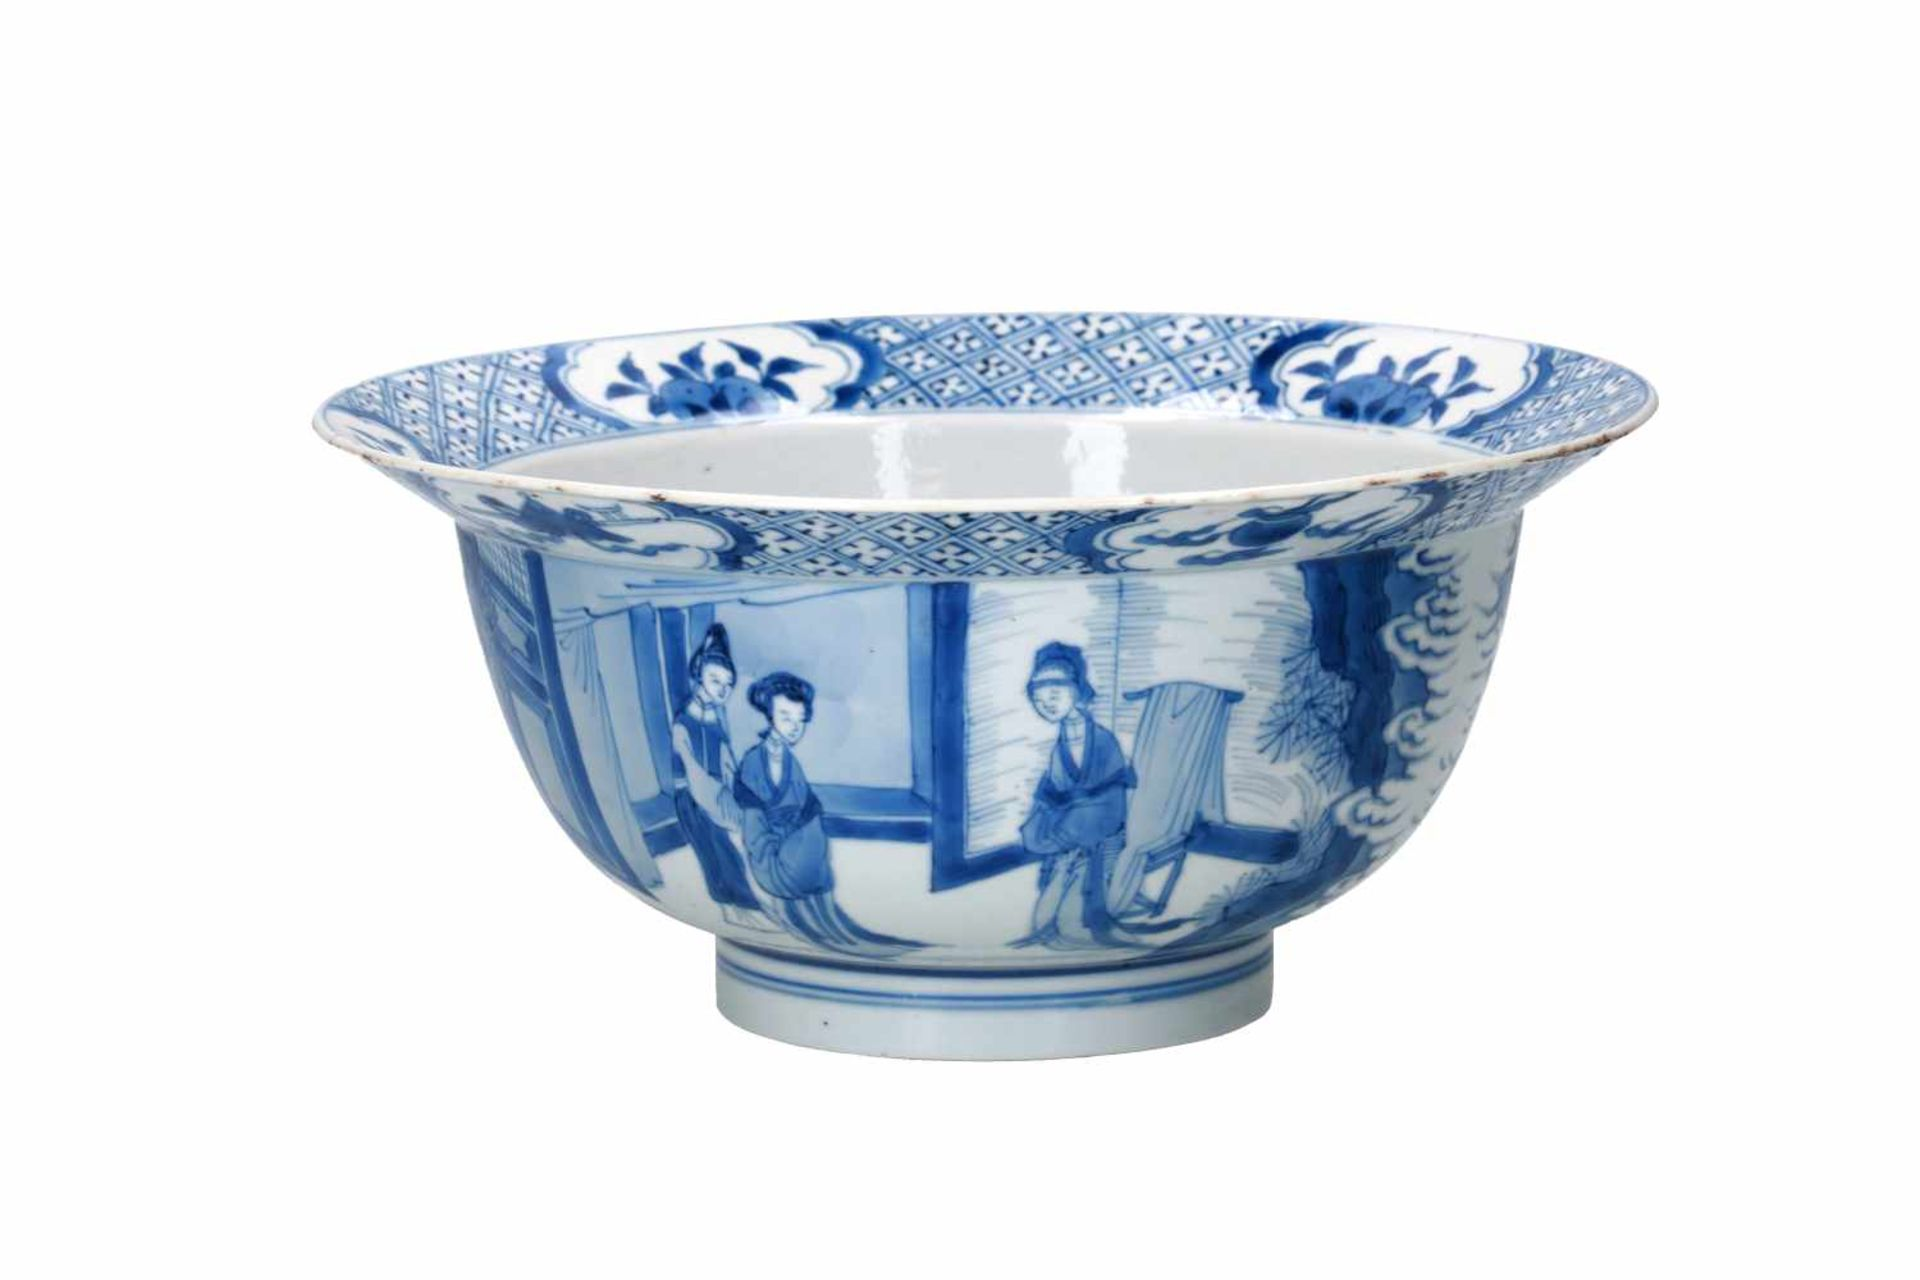 A blue and white porcelain 'klapmuts' bowl, decorated with scenes of the Romance of the Western - Bild 3 aus 6